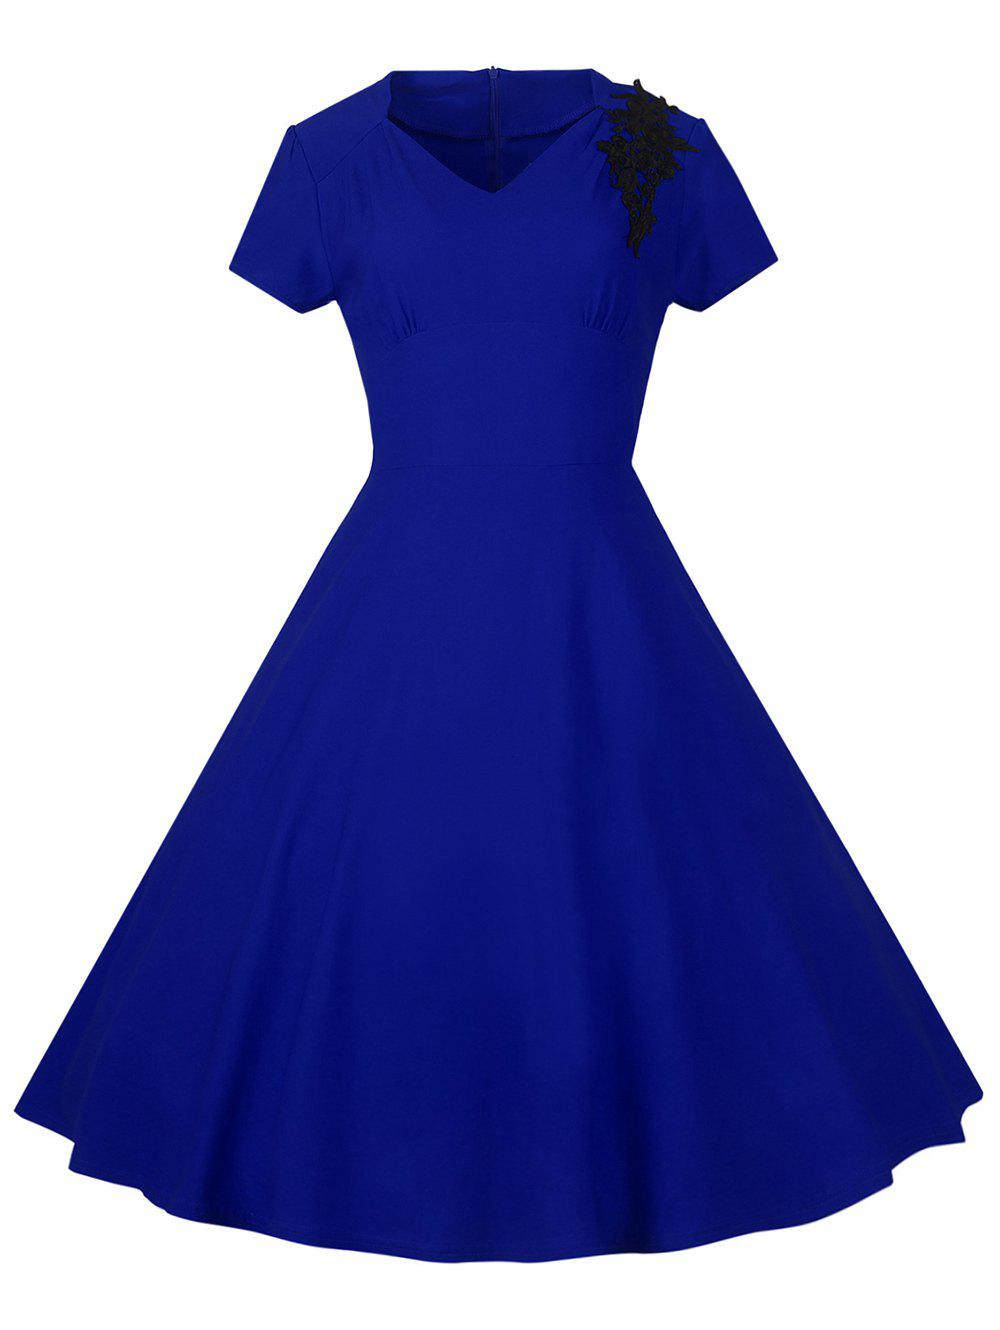 Lace Embroidered Insert 1940S Cocktail Swing Dress - ROYAL BLUE M